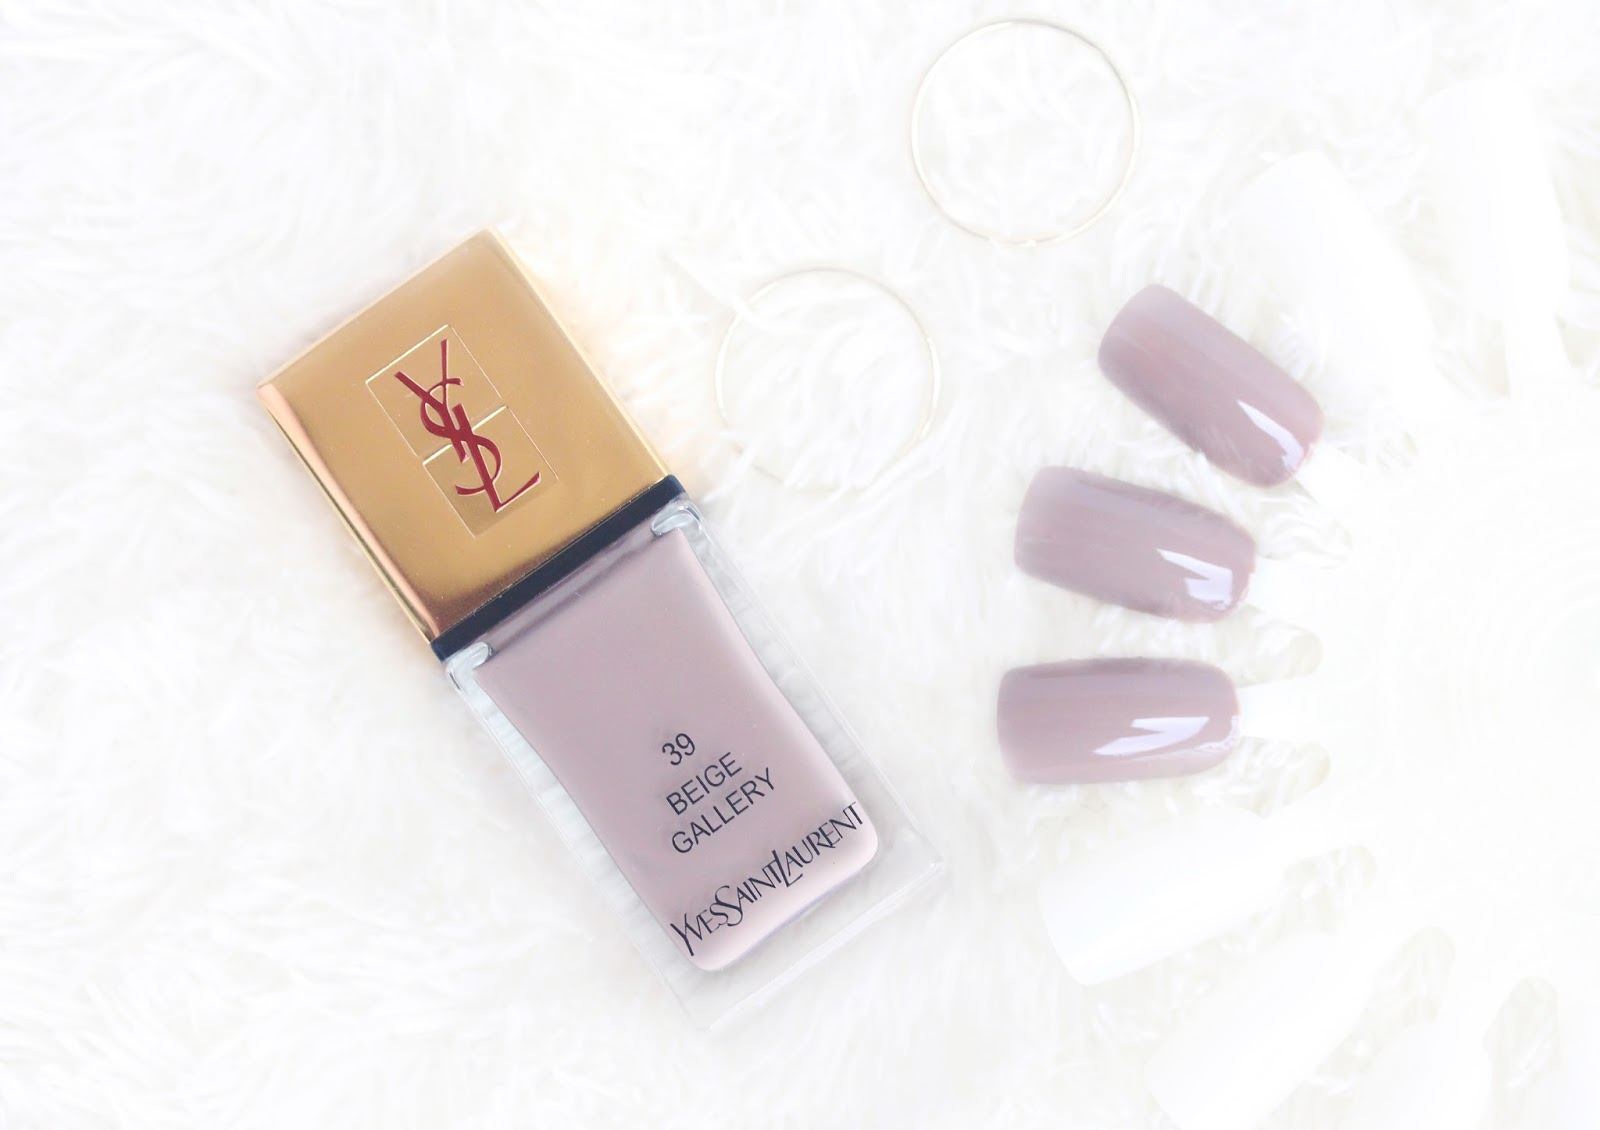 YSL La Laque Couture Nail Polish in 39 Beige Gallery